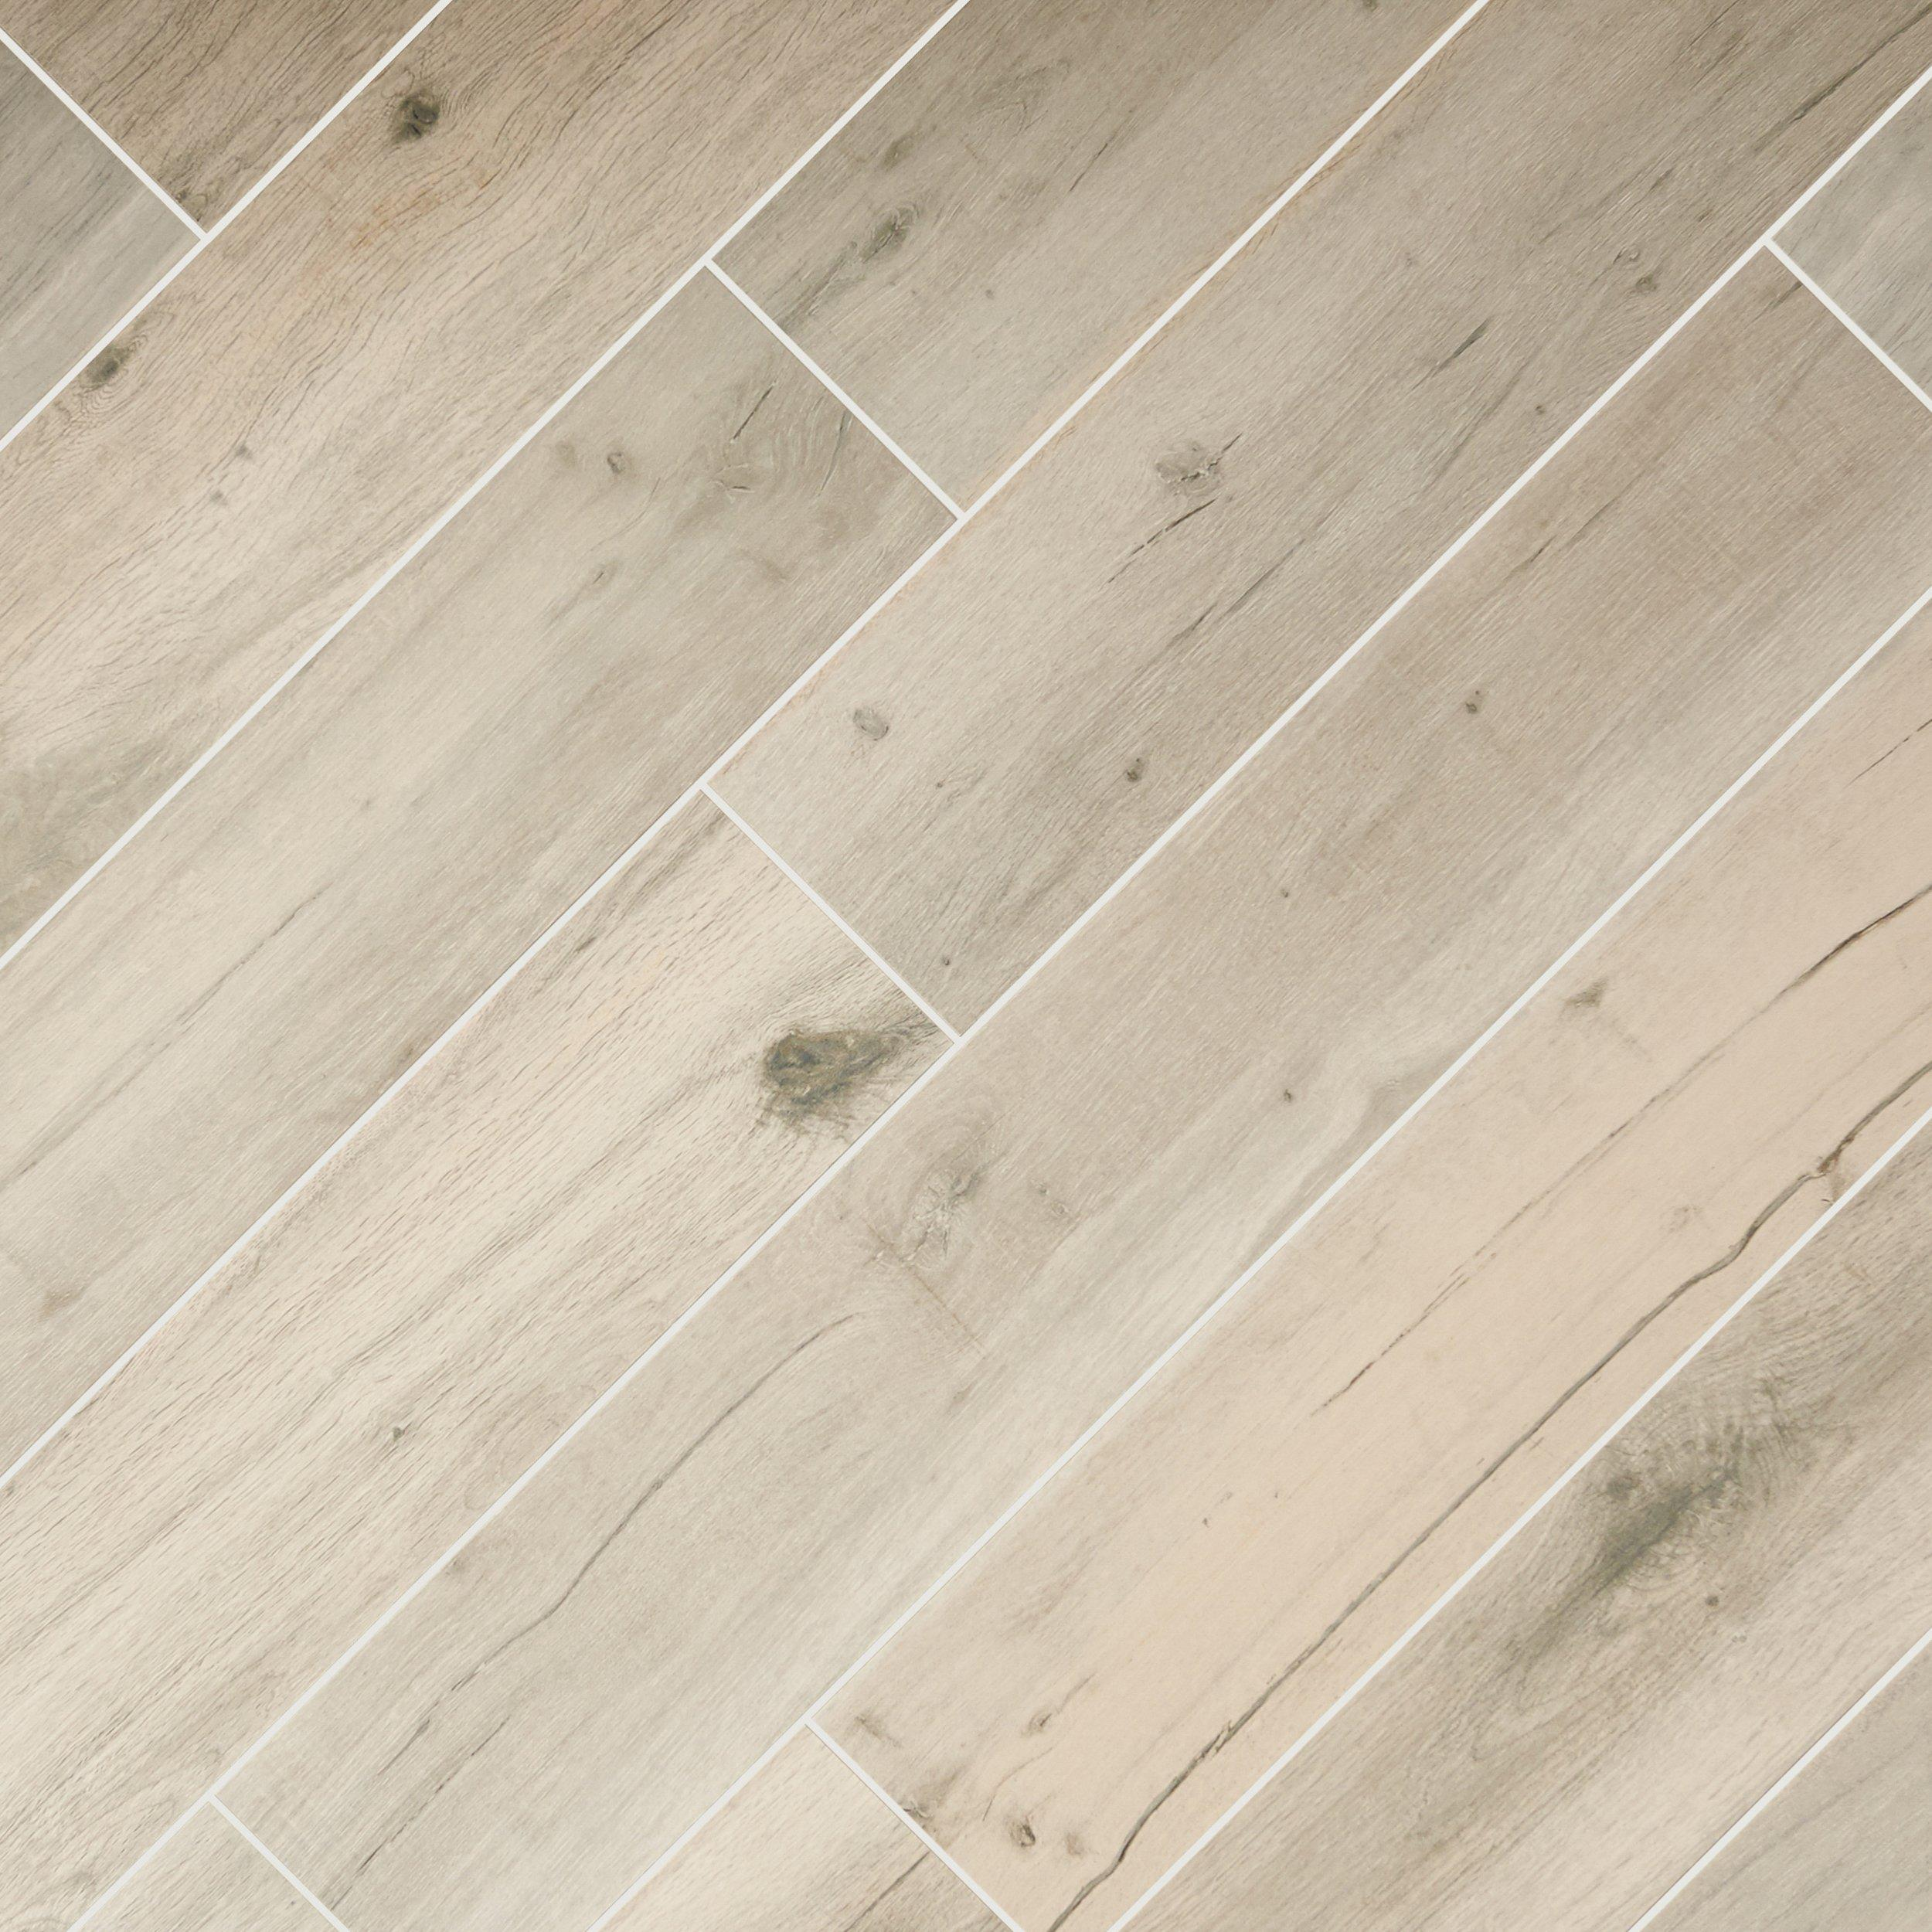 Birch Forest Gray Wood Plank Porcelain Tile - 6 x 36 - 100063999